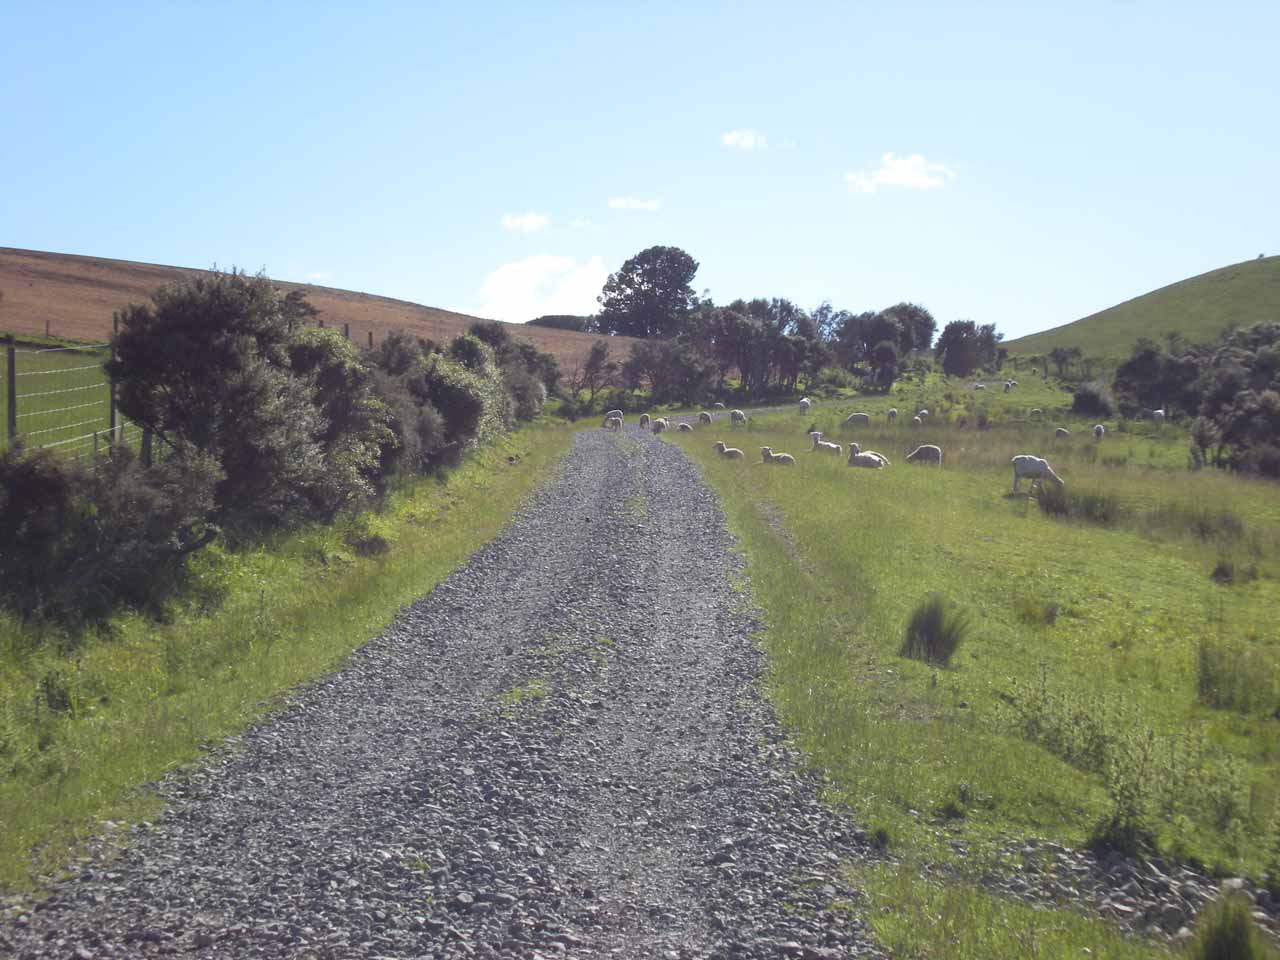 On the unsealed road shared with sheep leading to the View Hill Car Park